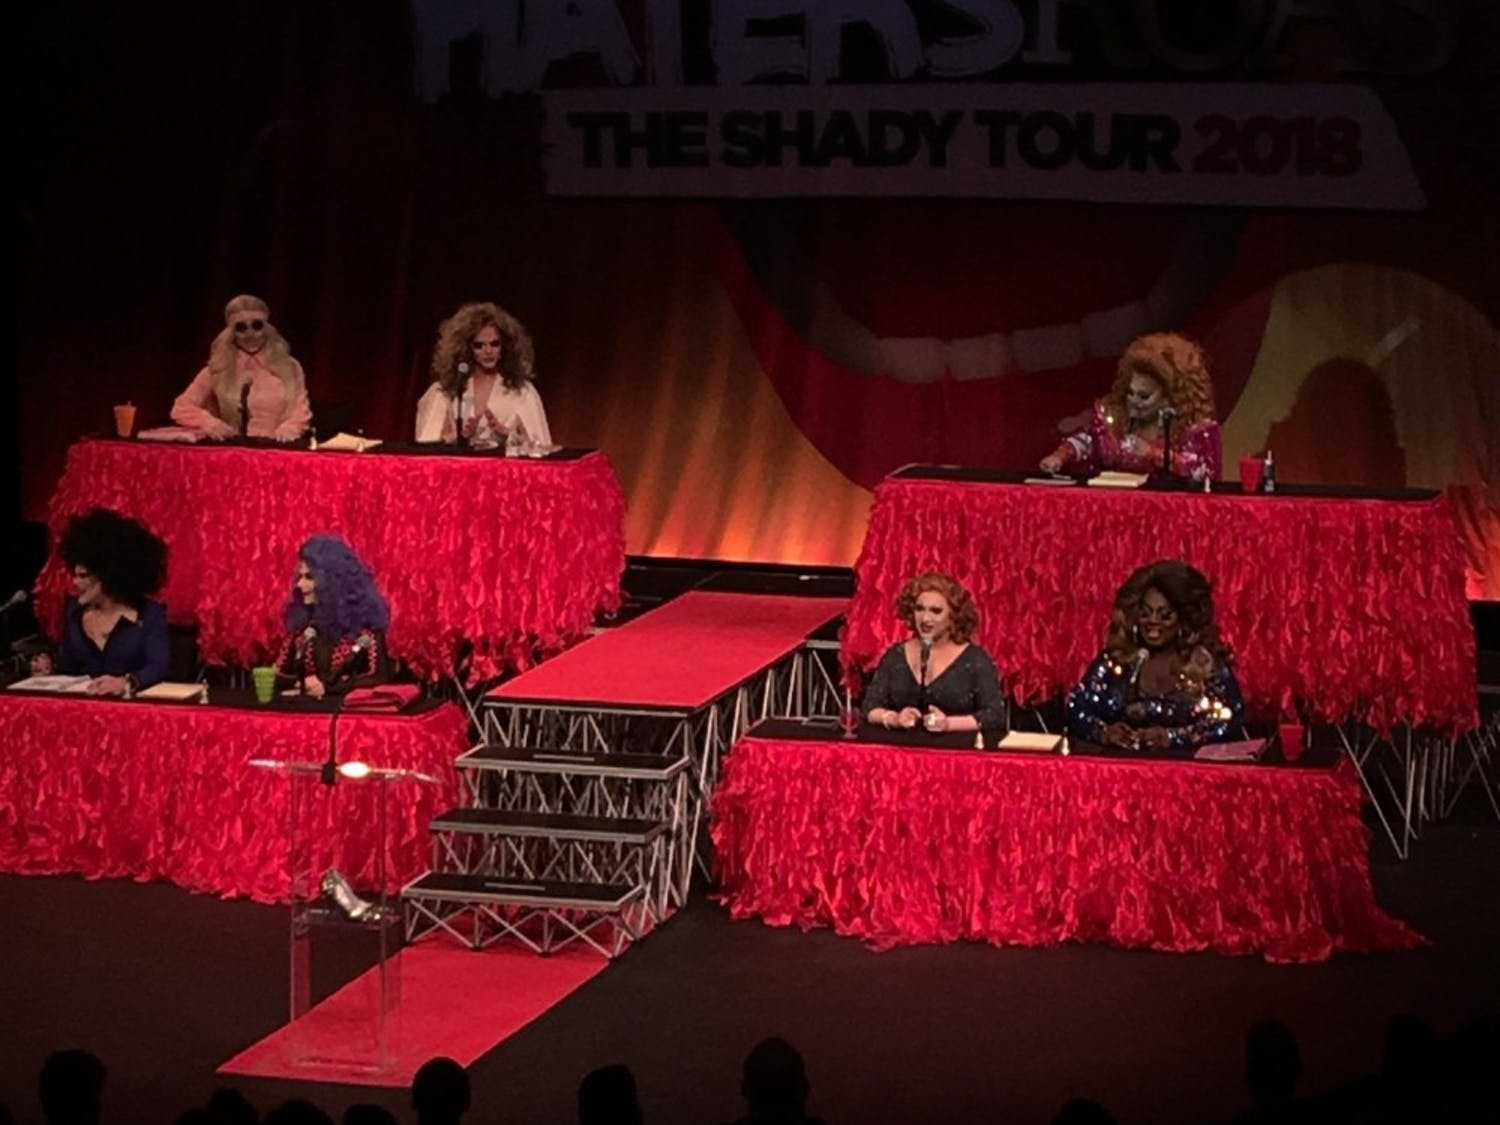 """Contestants from """"RuPaul's Drag Race"""" appeared at Shea's 710 Theatre for the Haters Roast.The drag queens traded insults with each other and the audience throughout the night."""